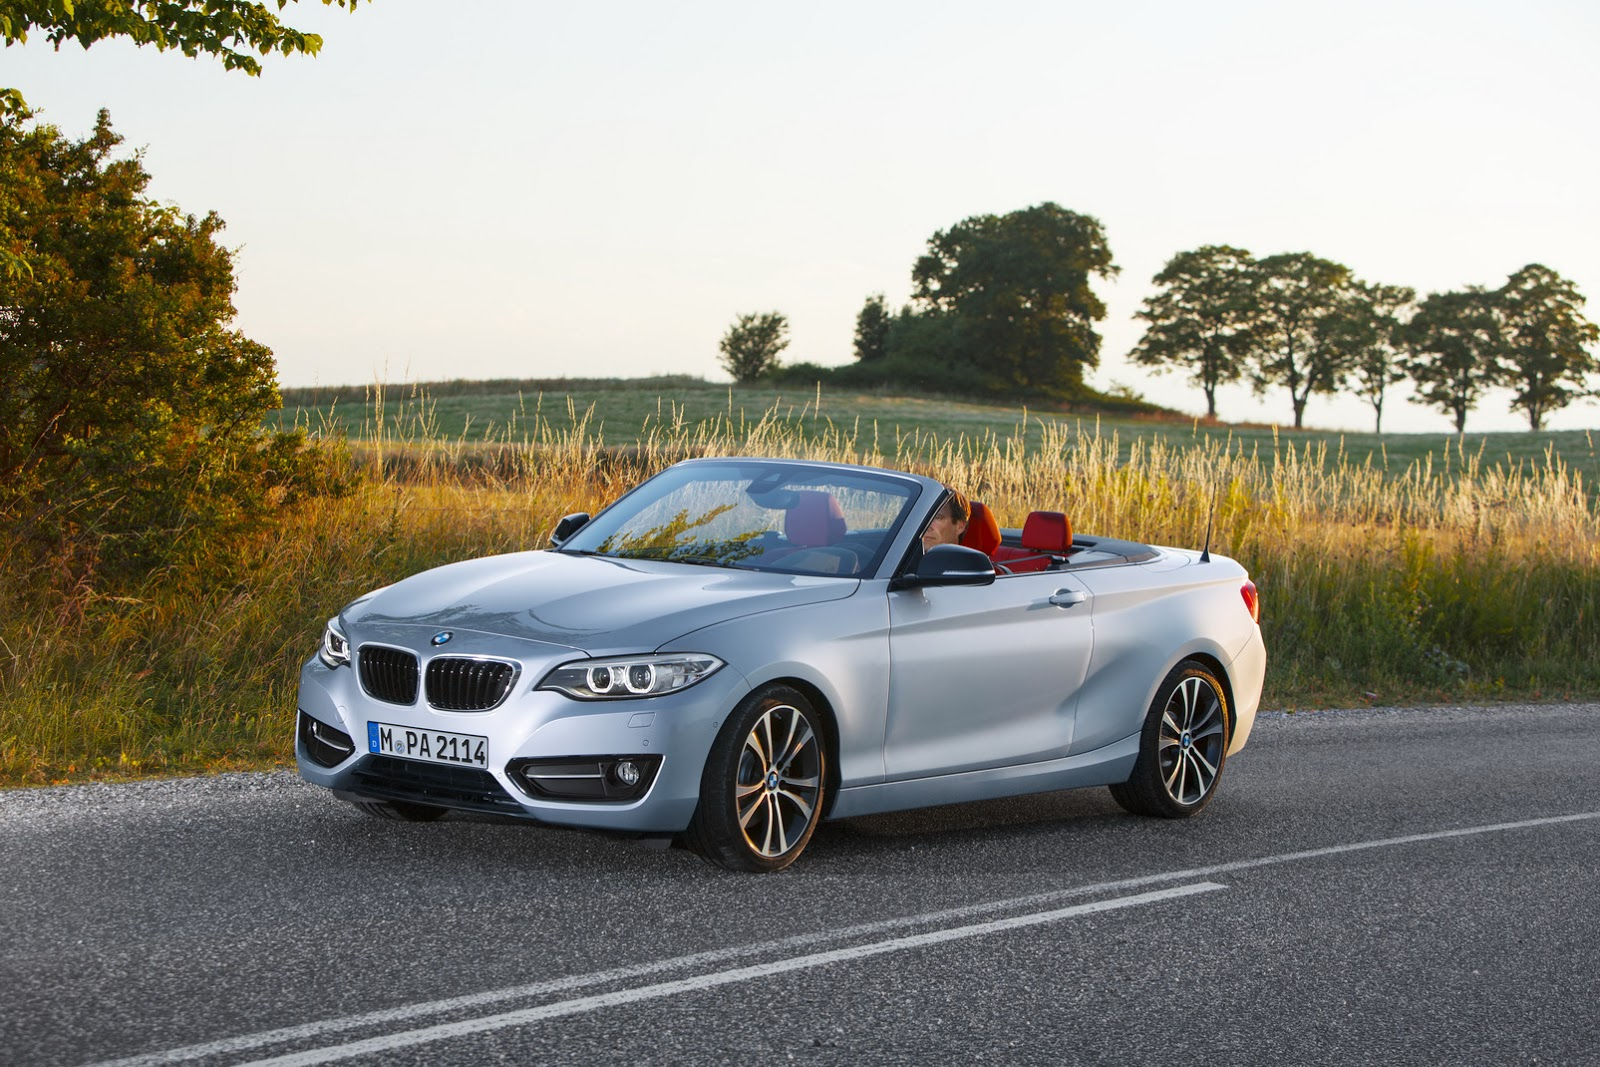 new bmw 2 series convertible photo gallery car gallery compact luxury saloons autocar india. Black Bedroom Furniture Sets. Home Design Ideas